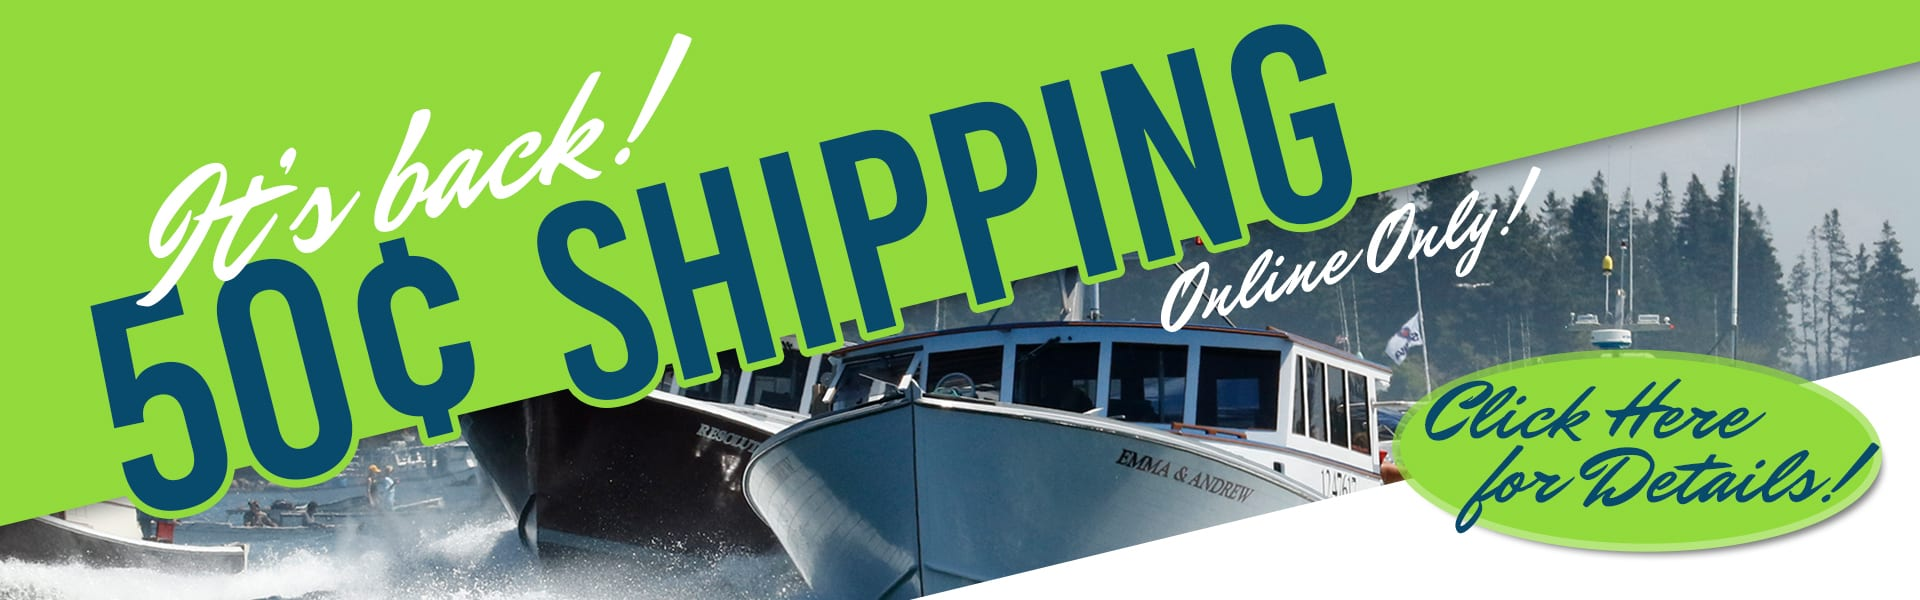 50¢ Shipping is Back! Click for Details